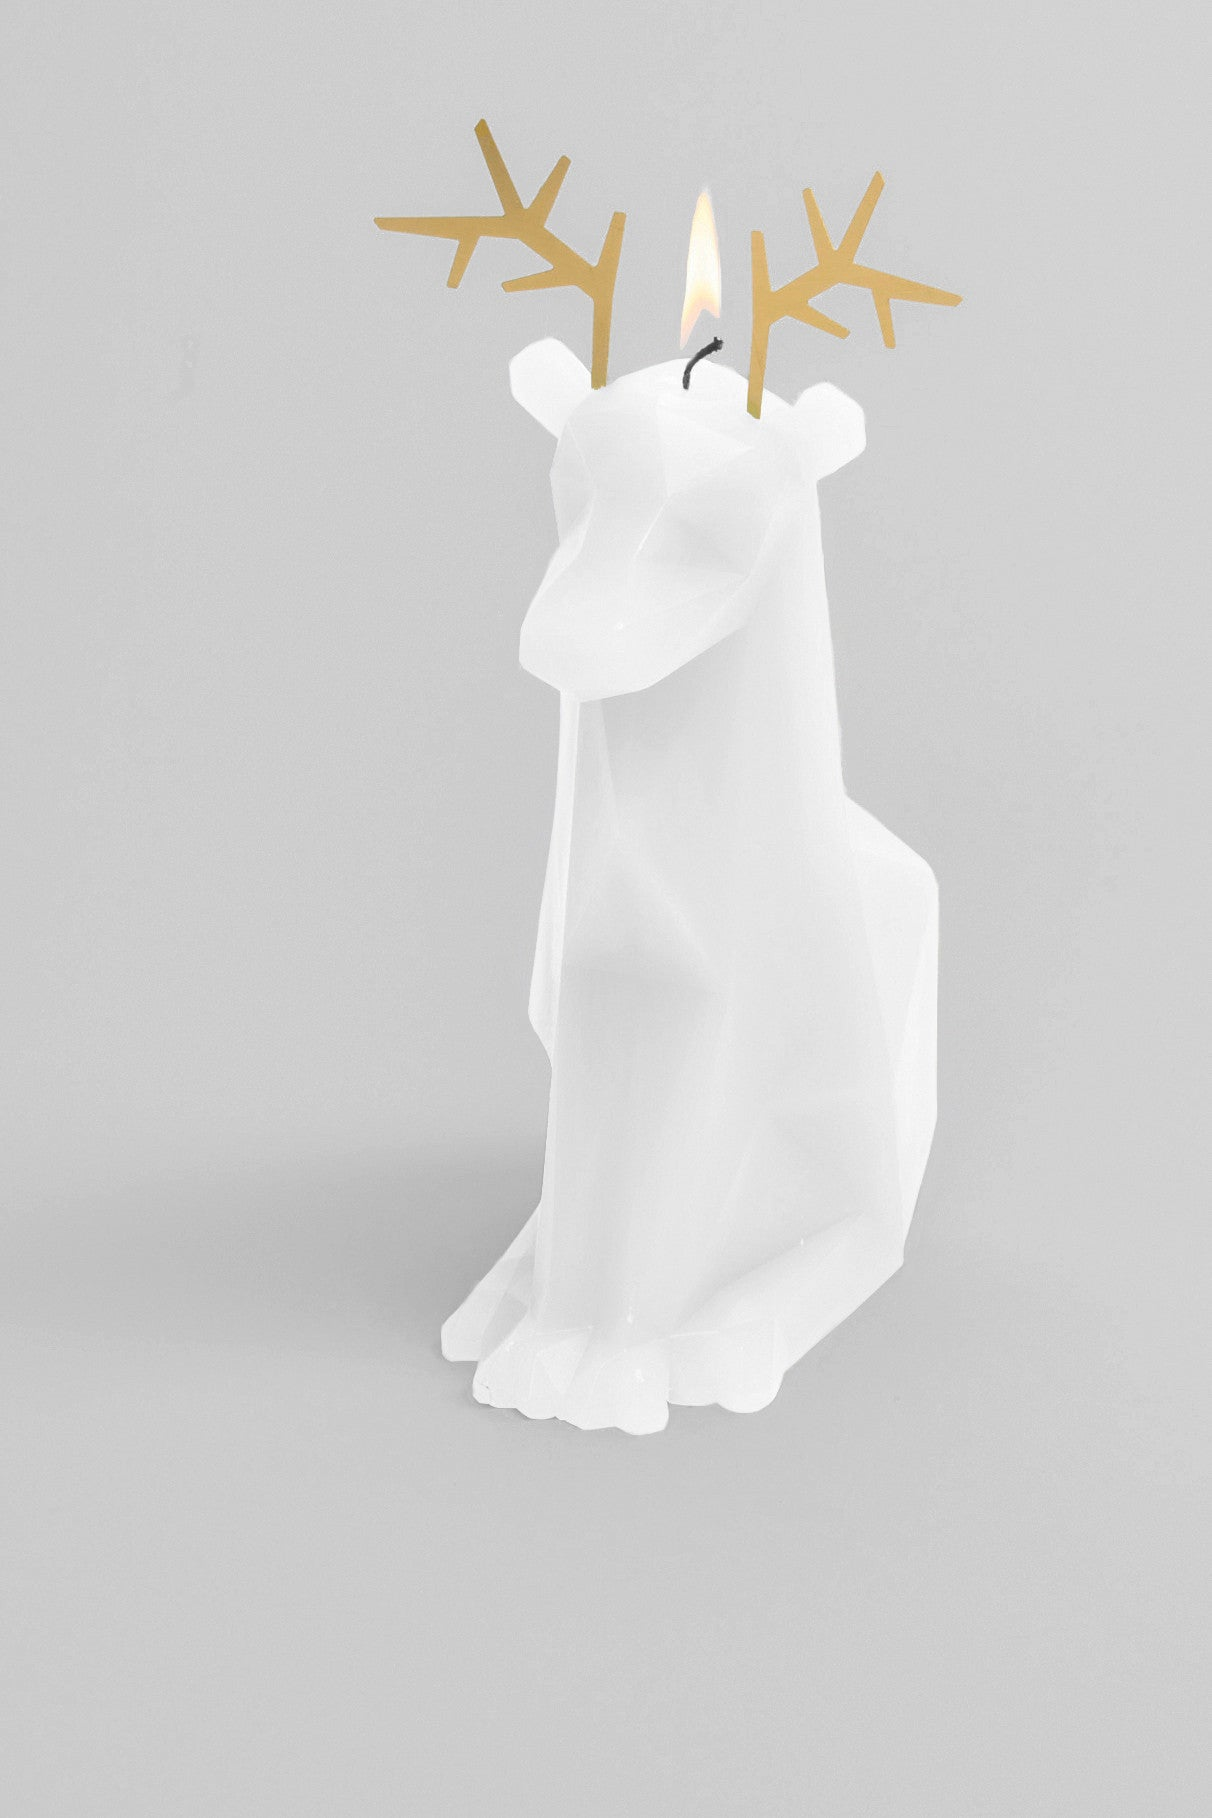 Dýri White Deer - PyroPet Candle Company